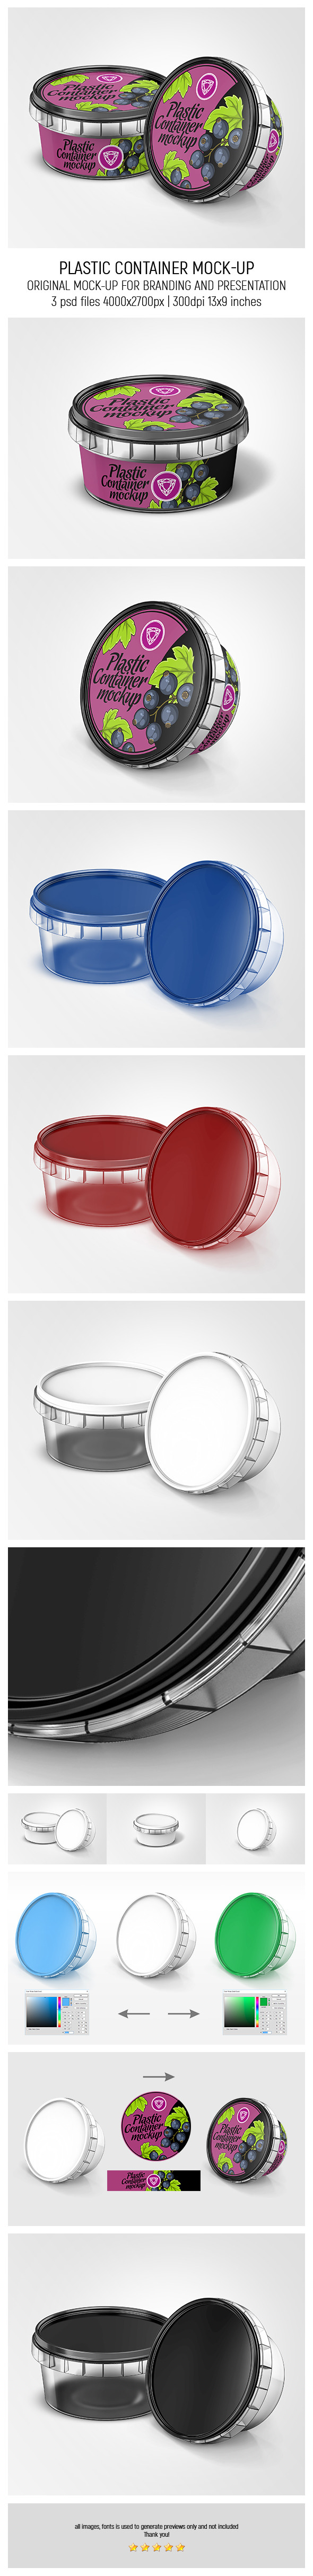 Plastic Container Mock-up